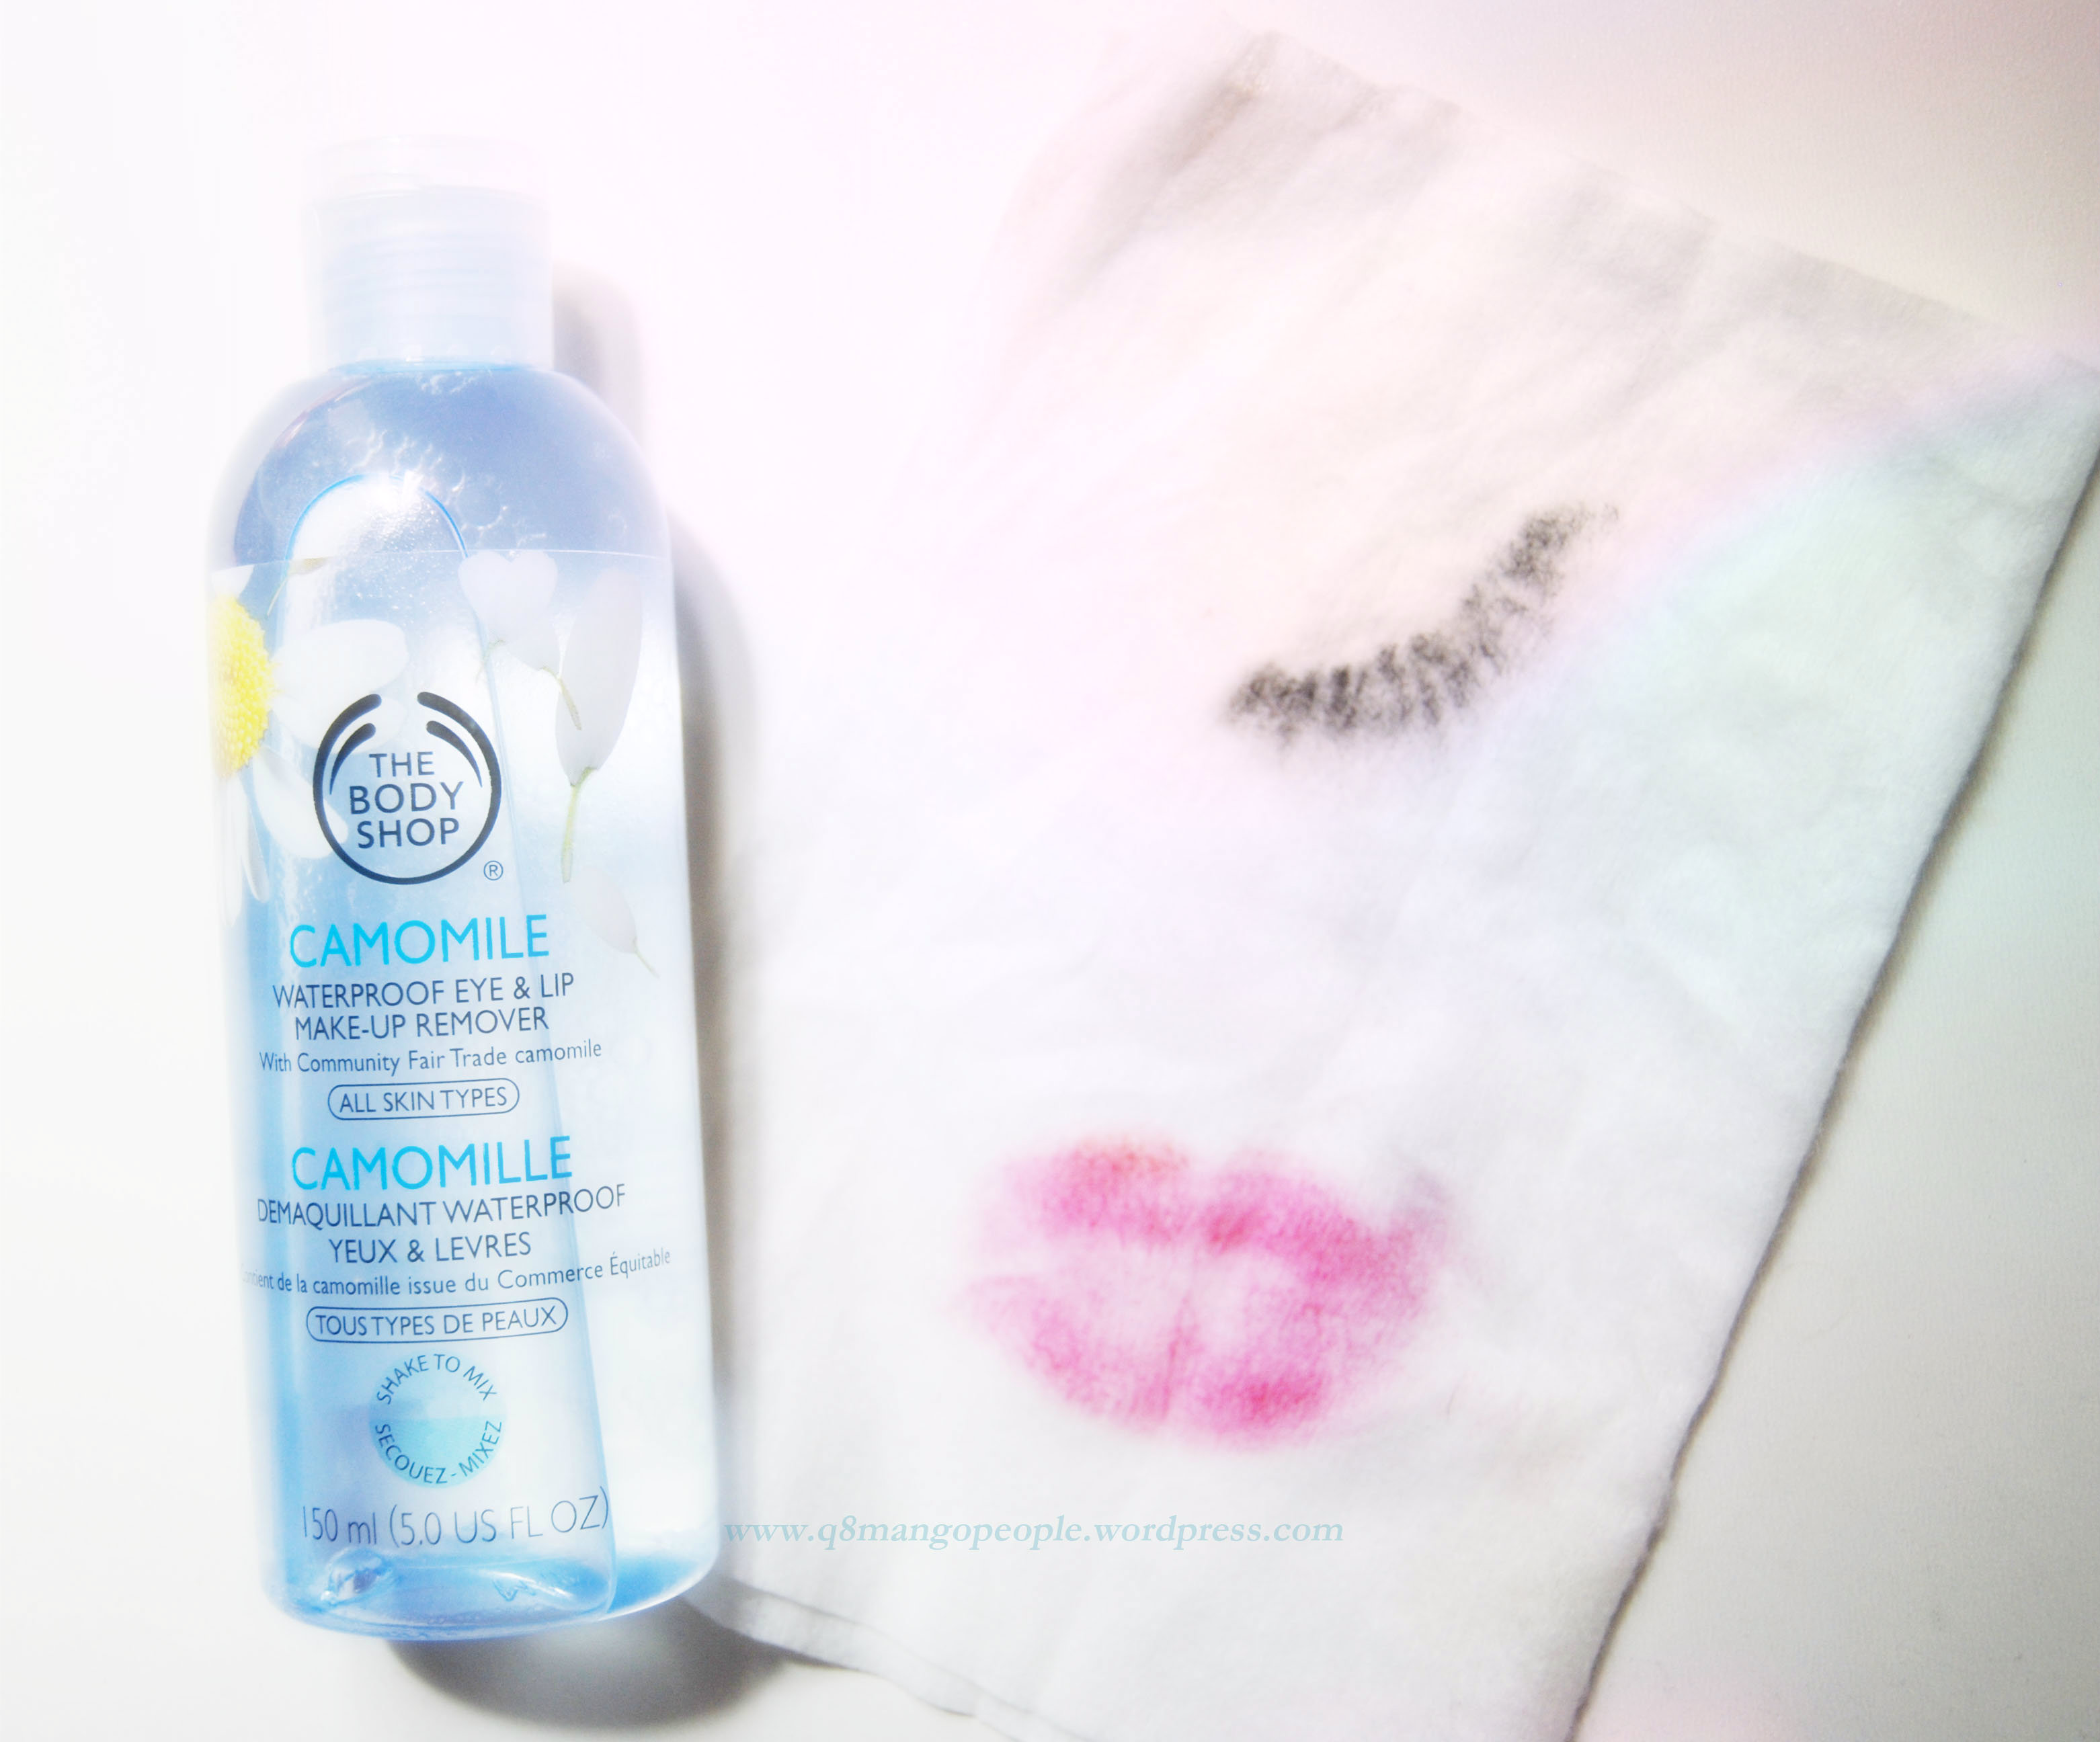 Review : The Body shop Camomile Waterproof Eye & Lip Makeup Remover